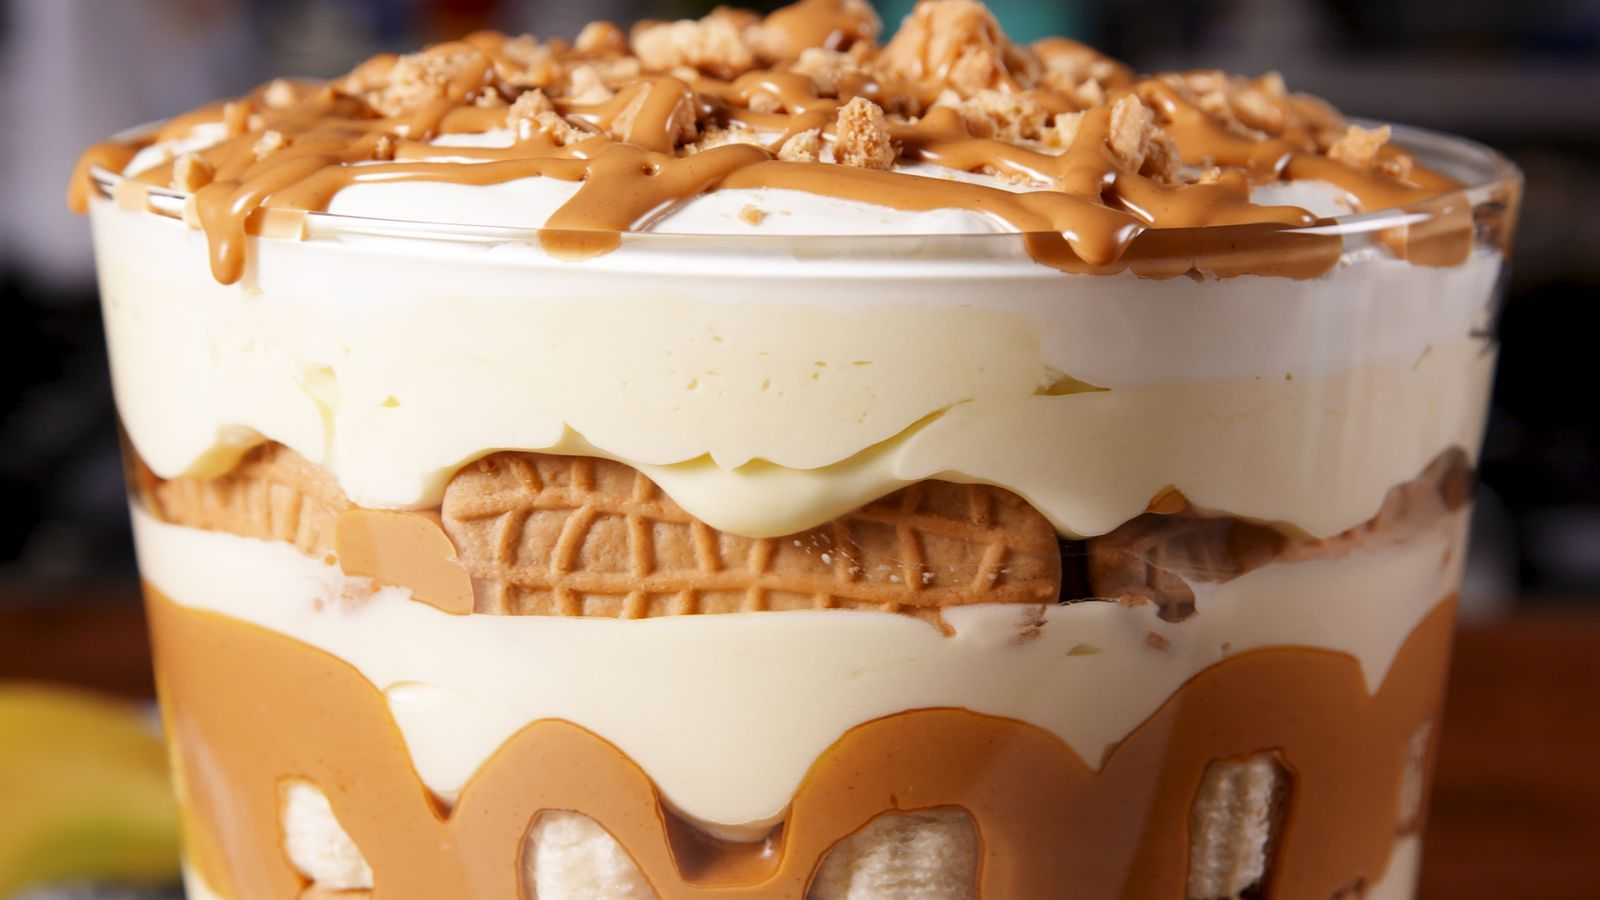 Peanut Butter Lovers Will Die Over This Peanut Butter Banana Pudding Recipe Peanut Butter Recipes Banana Pudding Banana Pudding Recipes